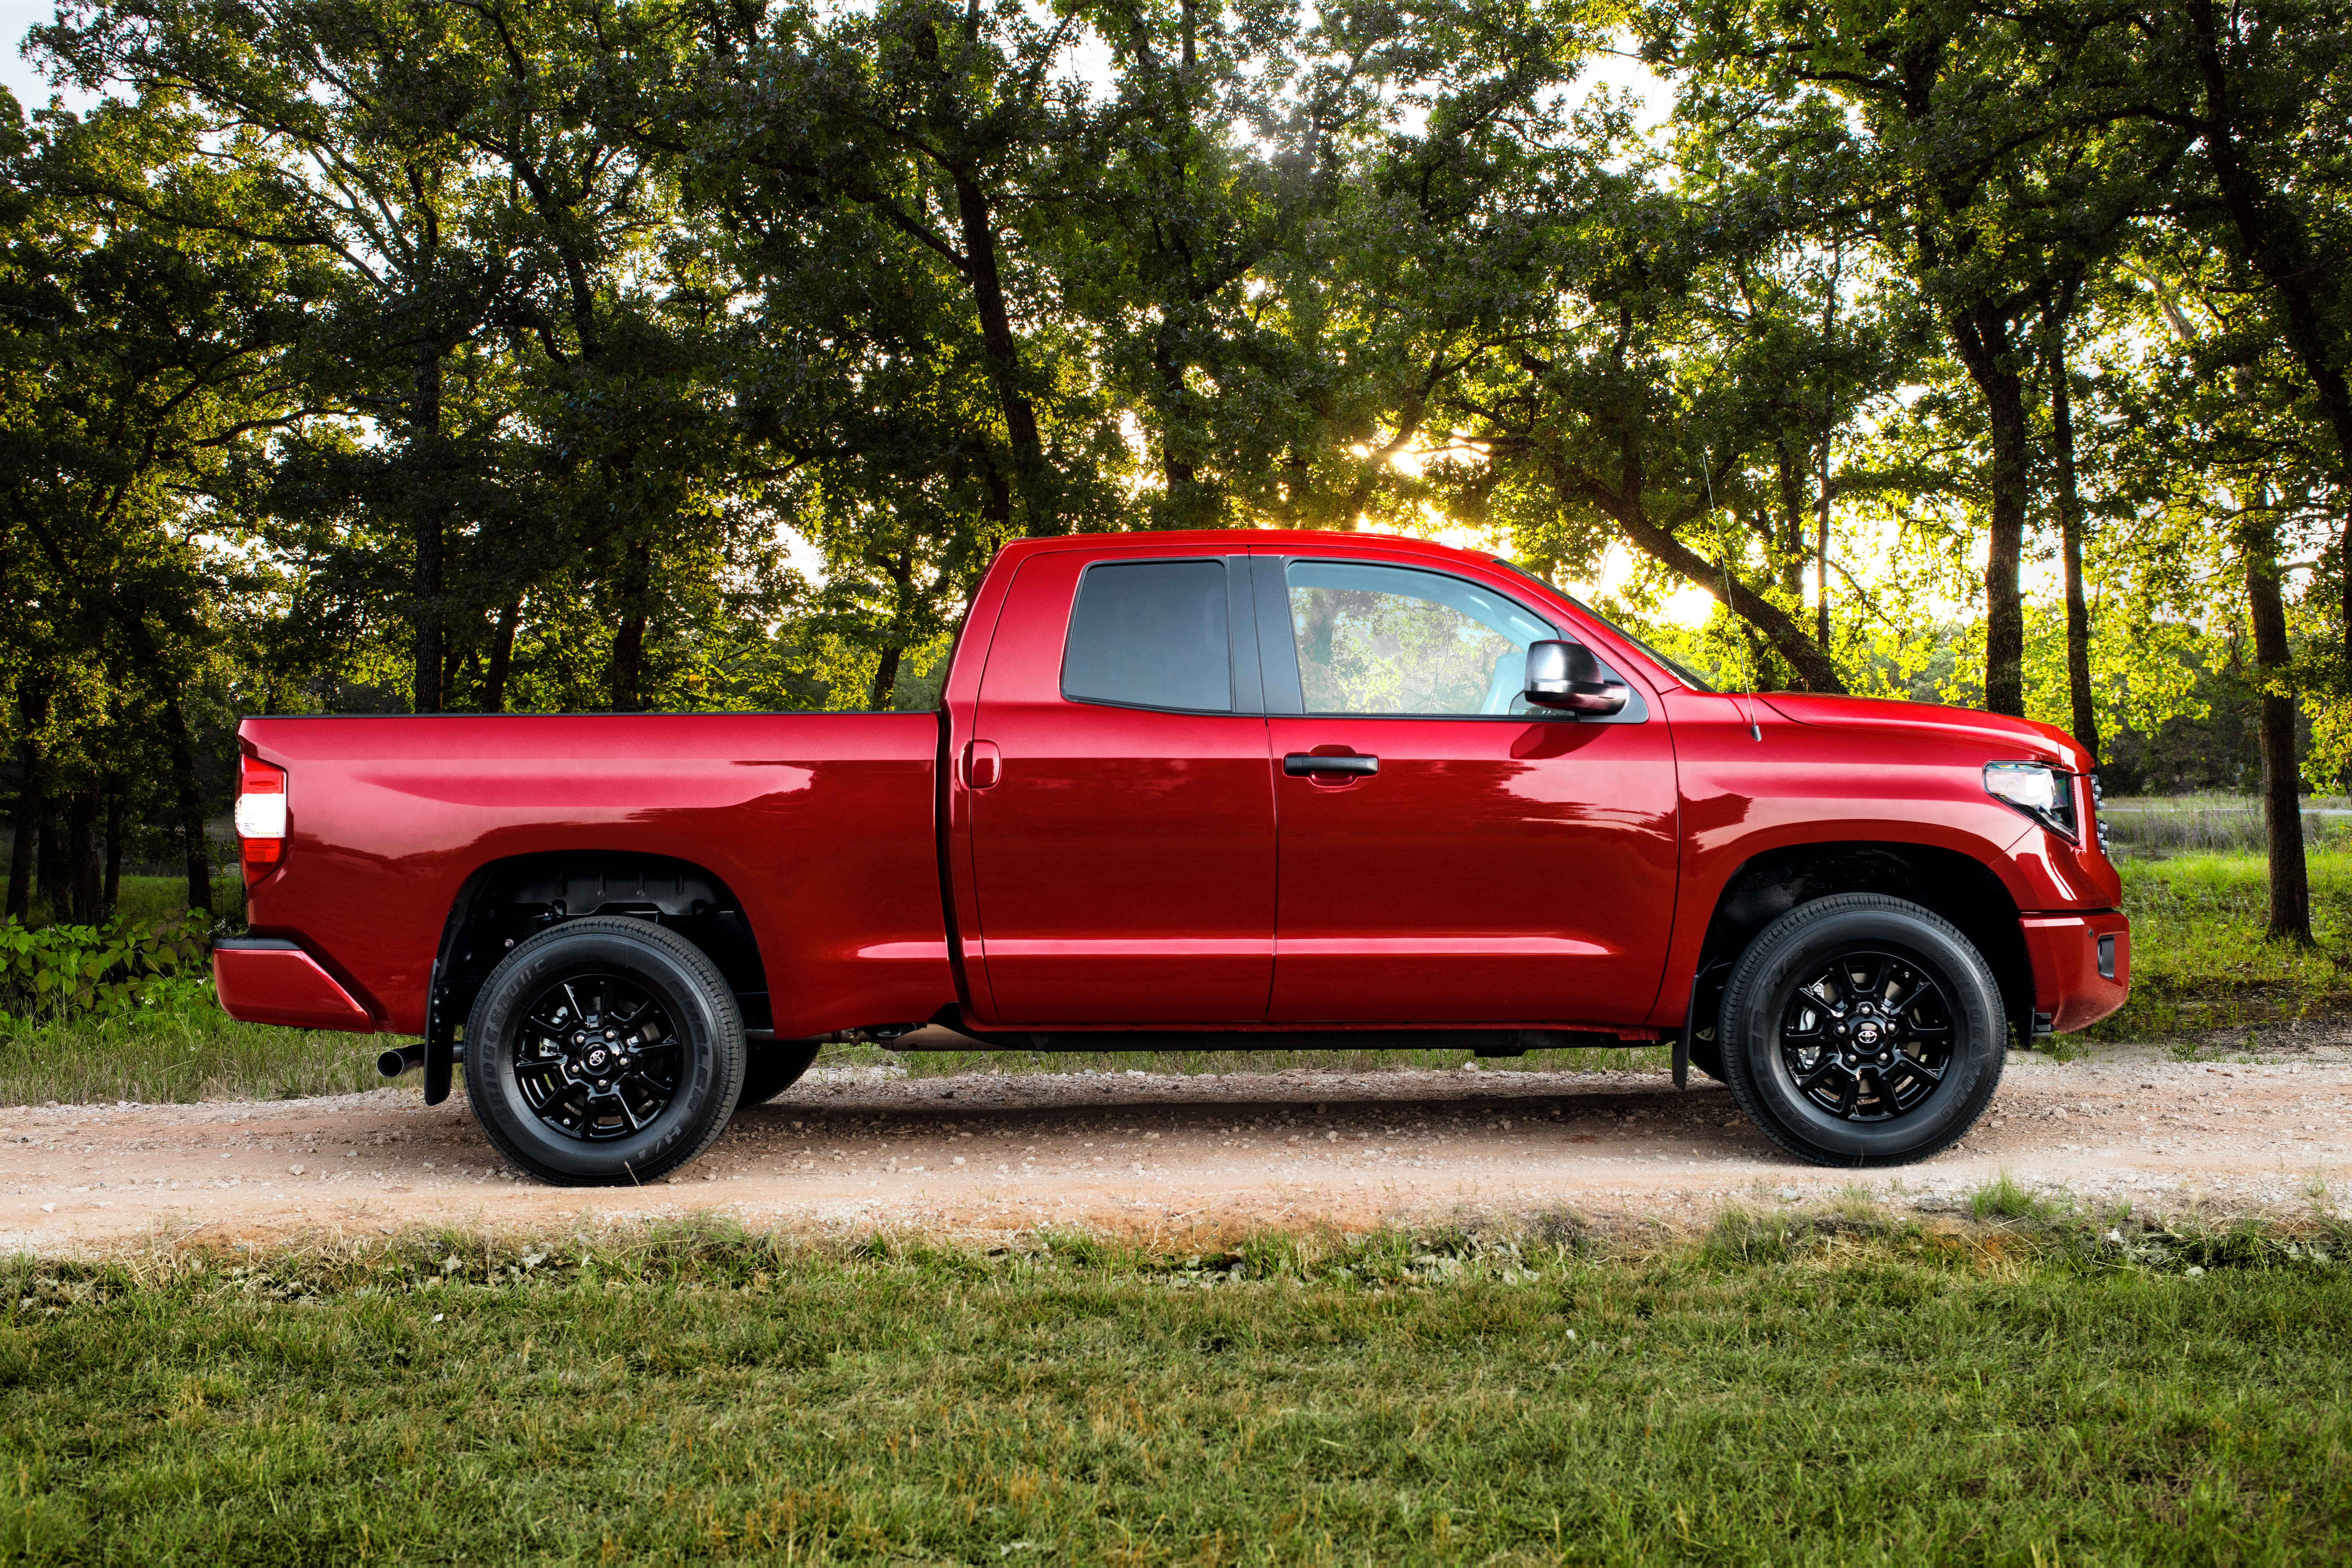 Toyota Launches New Appearance Packages For Tacoma, Tundra ...